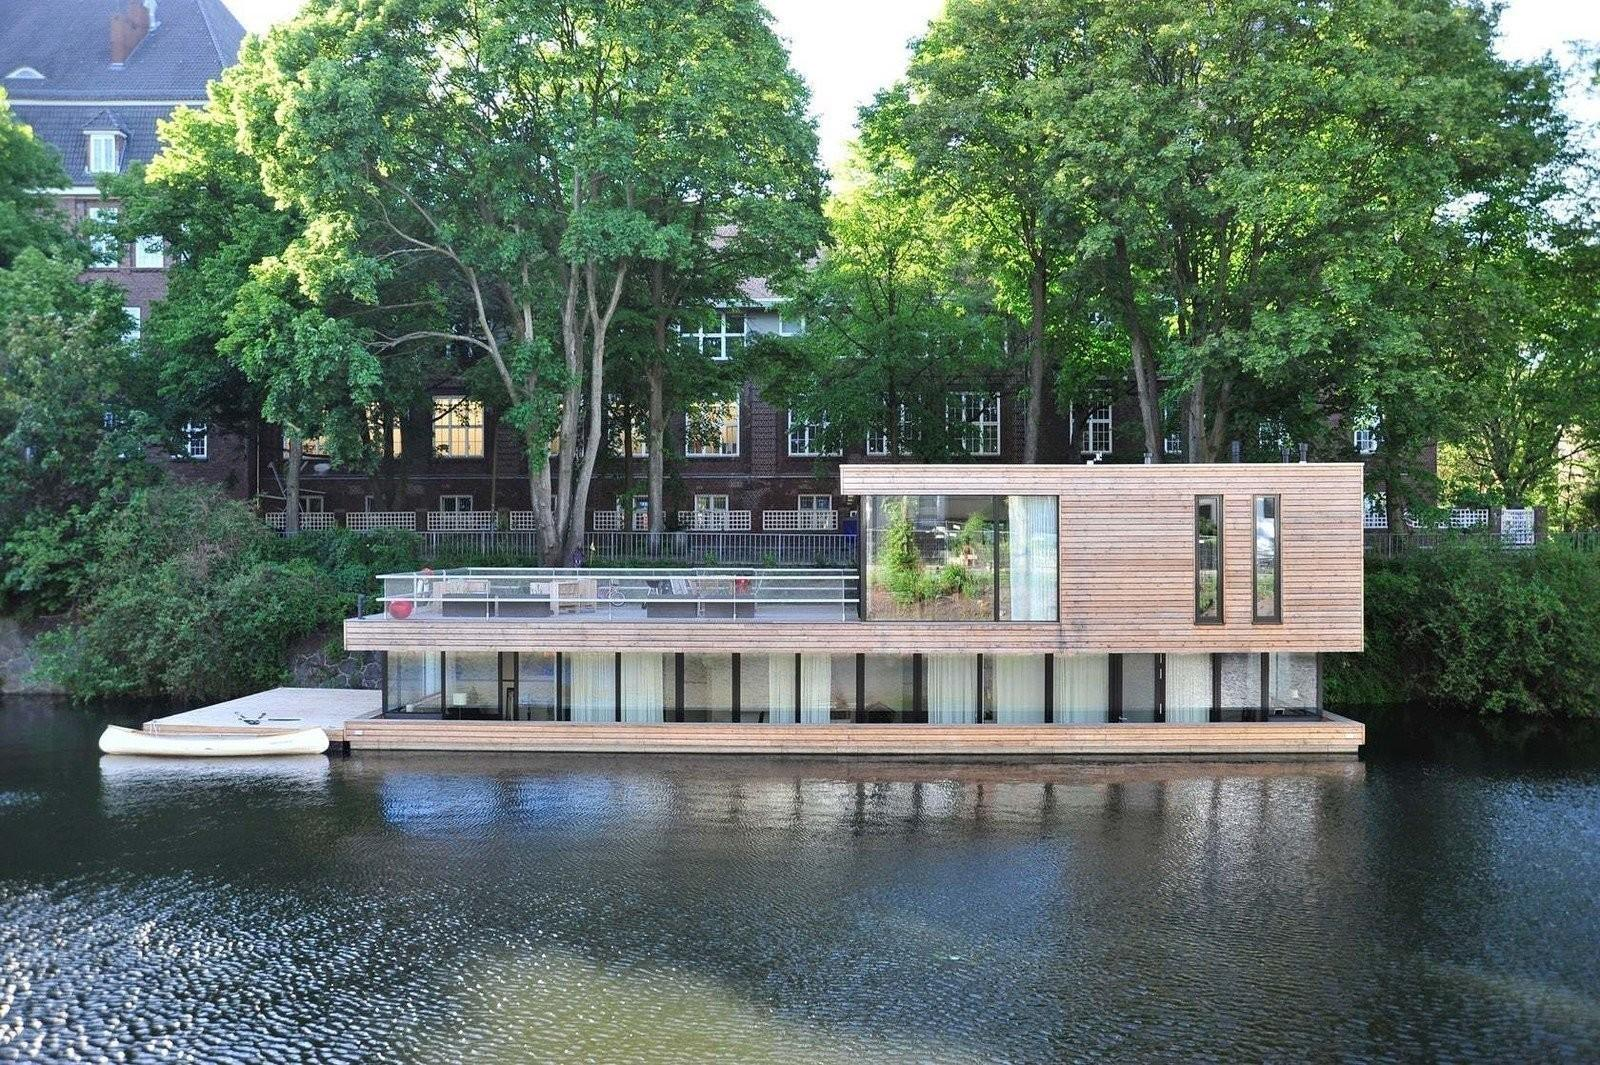 Modern Floating Homes Offer Aquatic Lifestyle